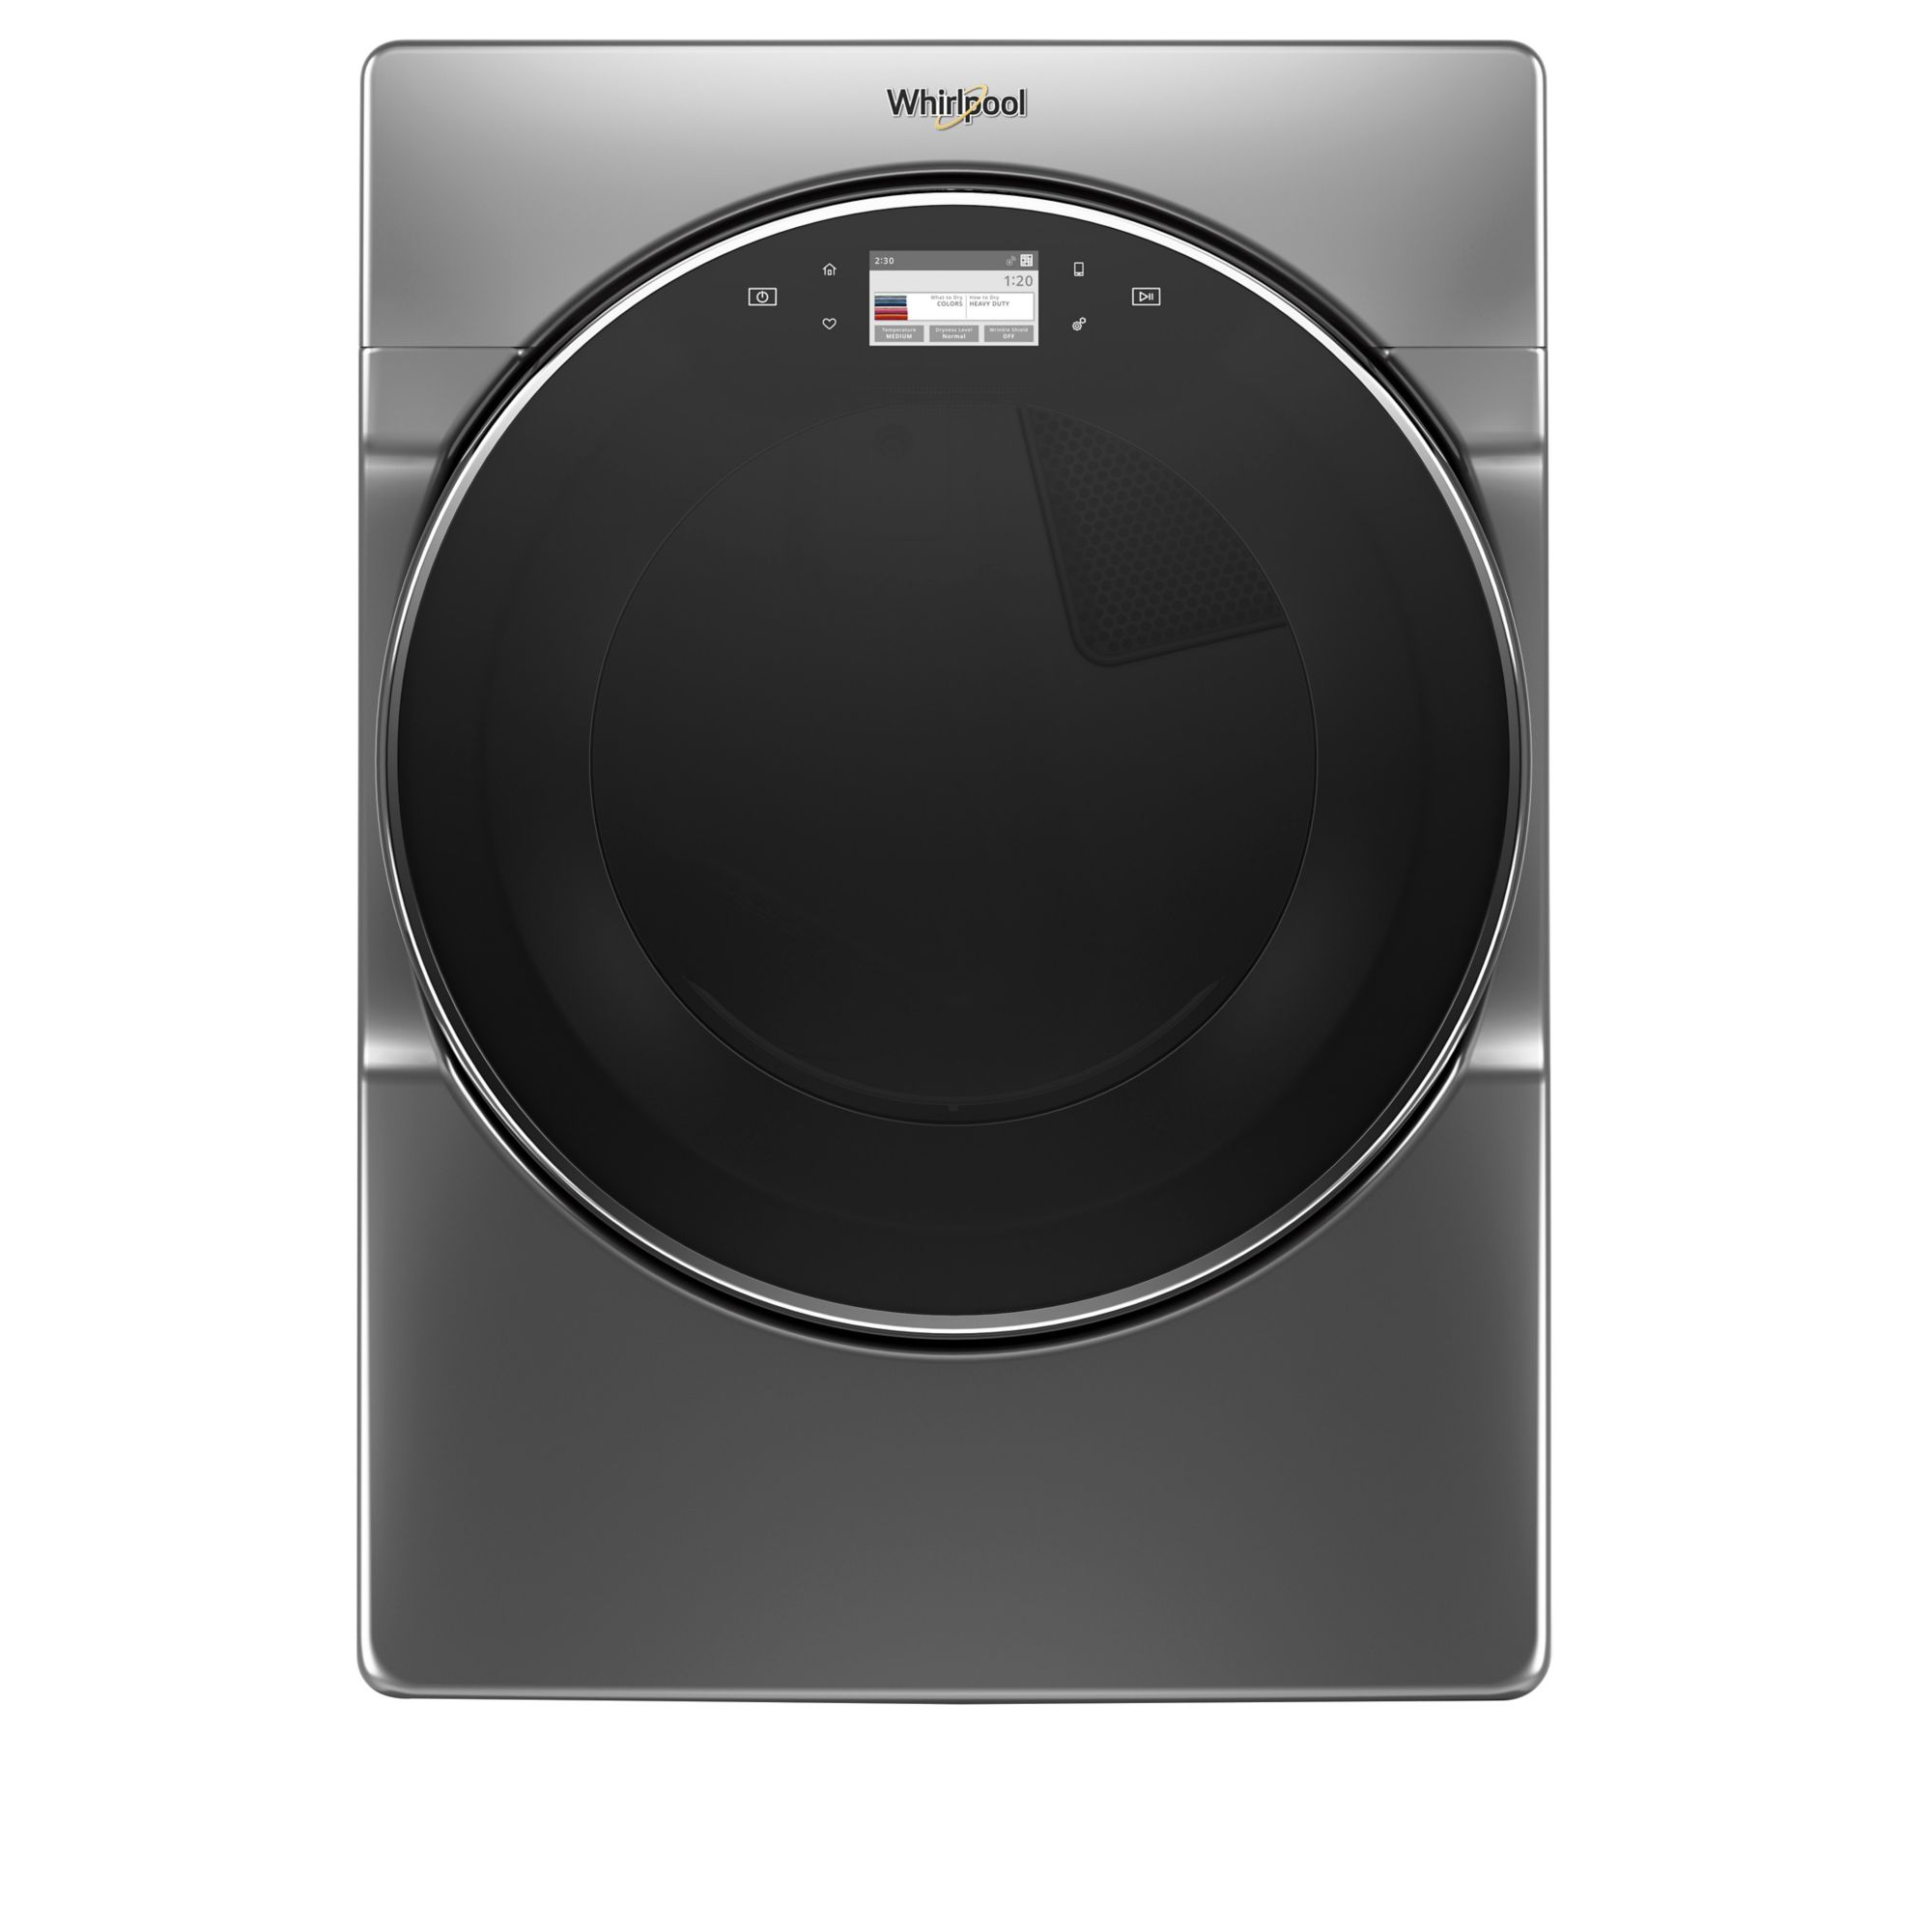 Whirlpool 7.4 Cu. Ft. Smart Front Load Electric Dryer - Chrome Shadow